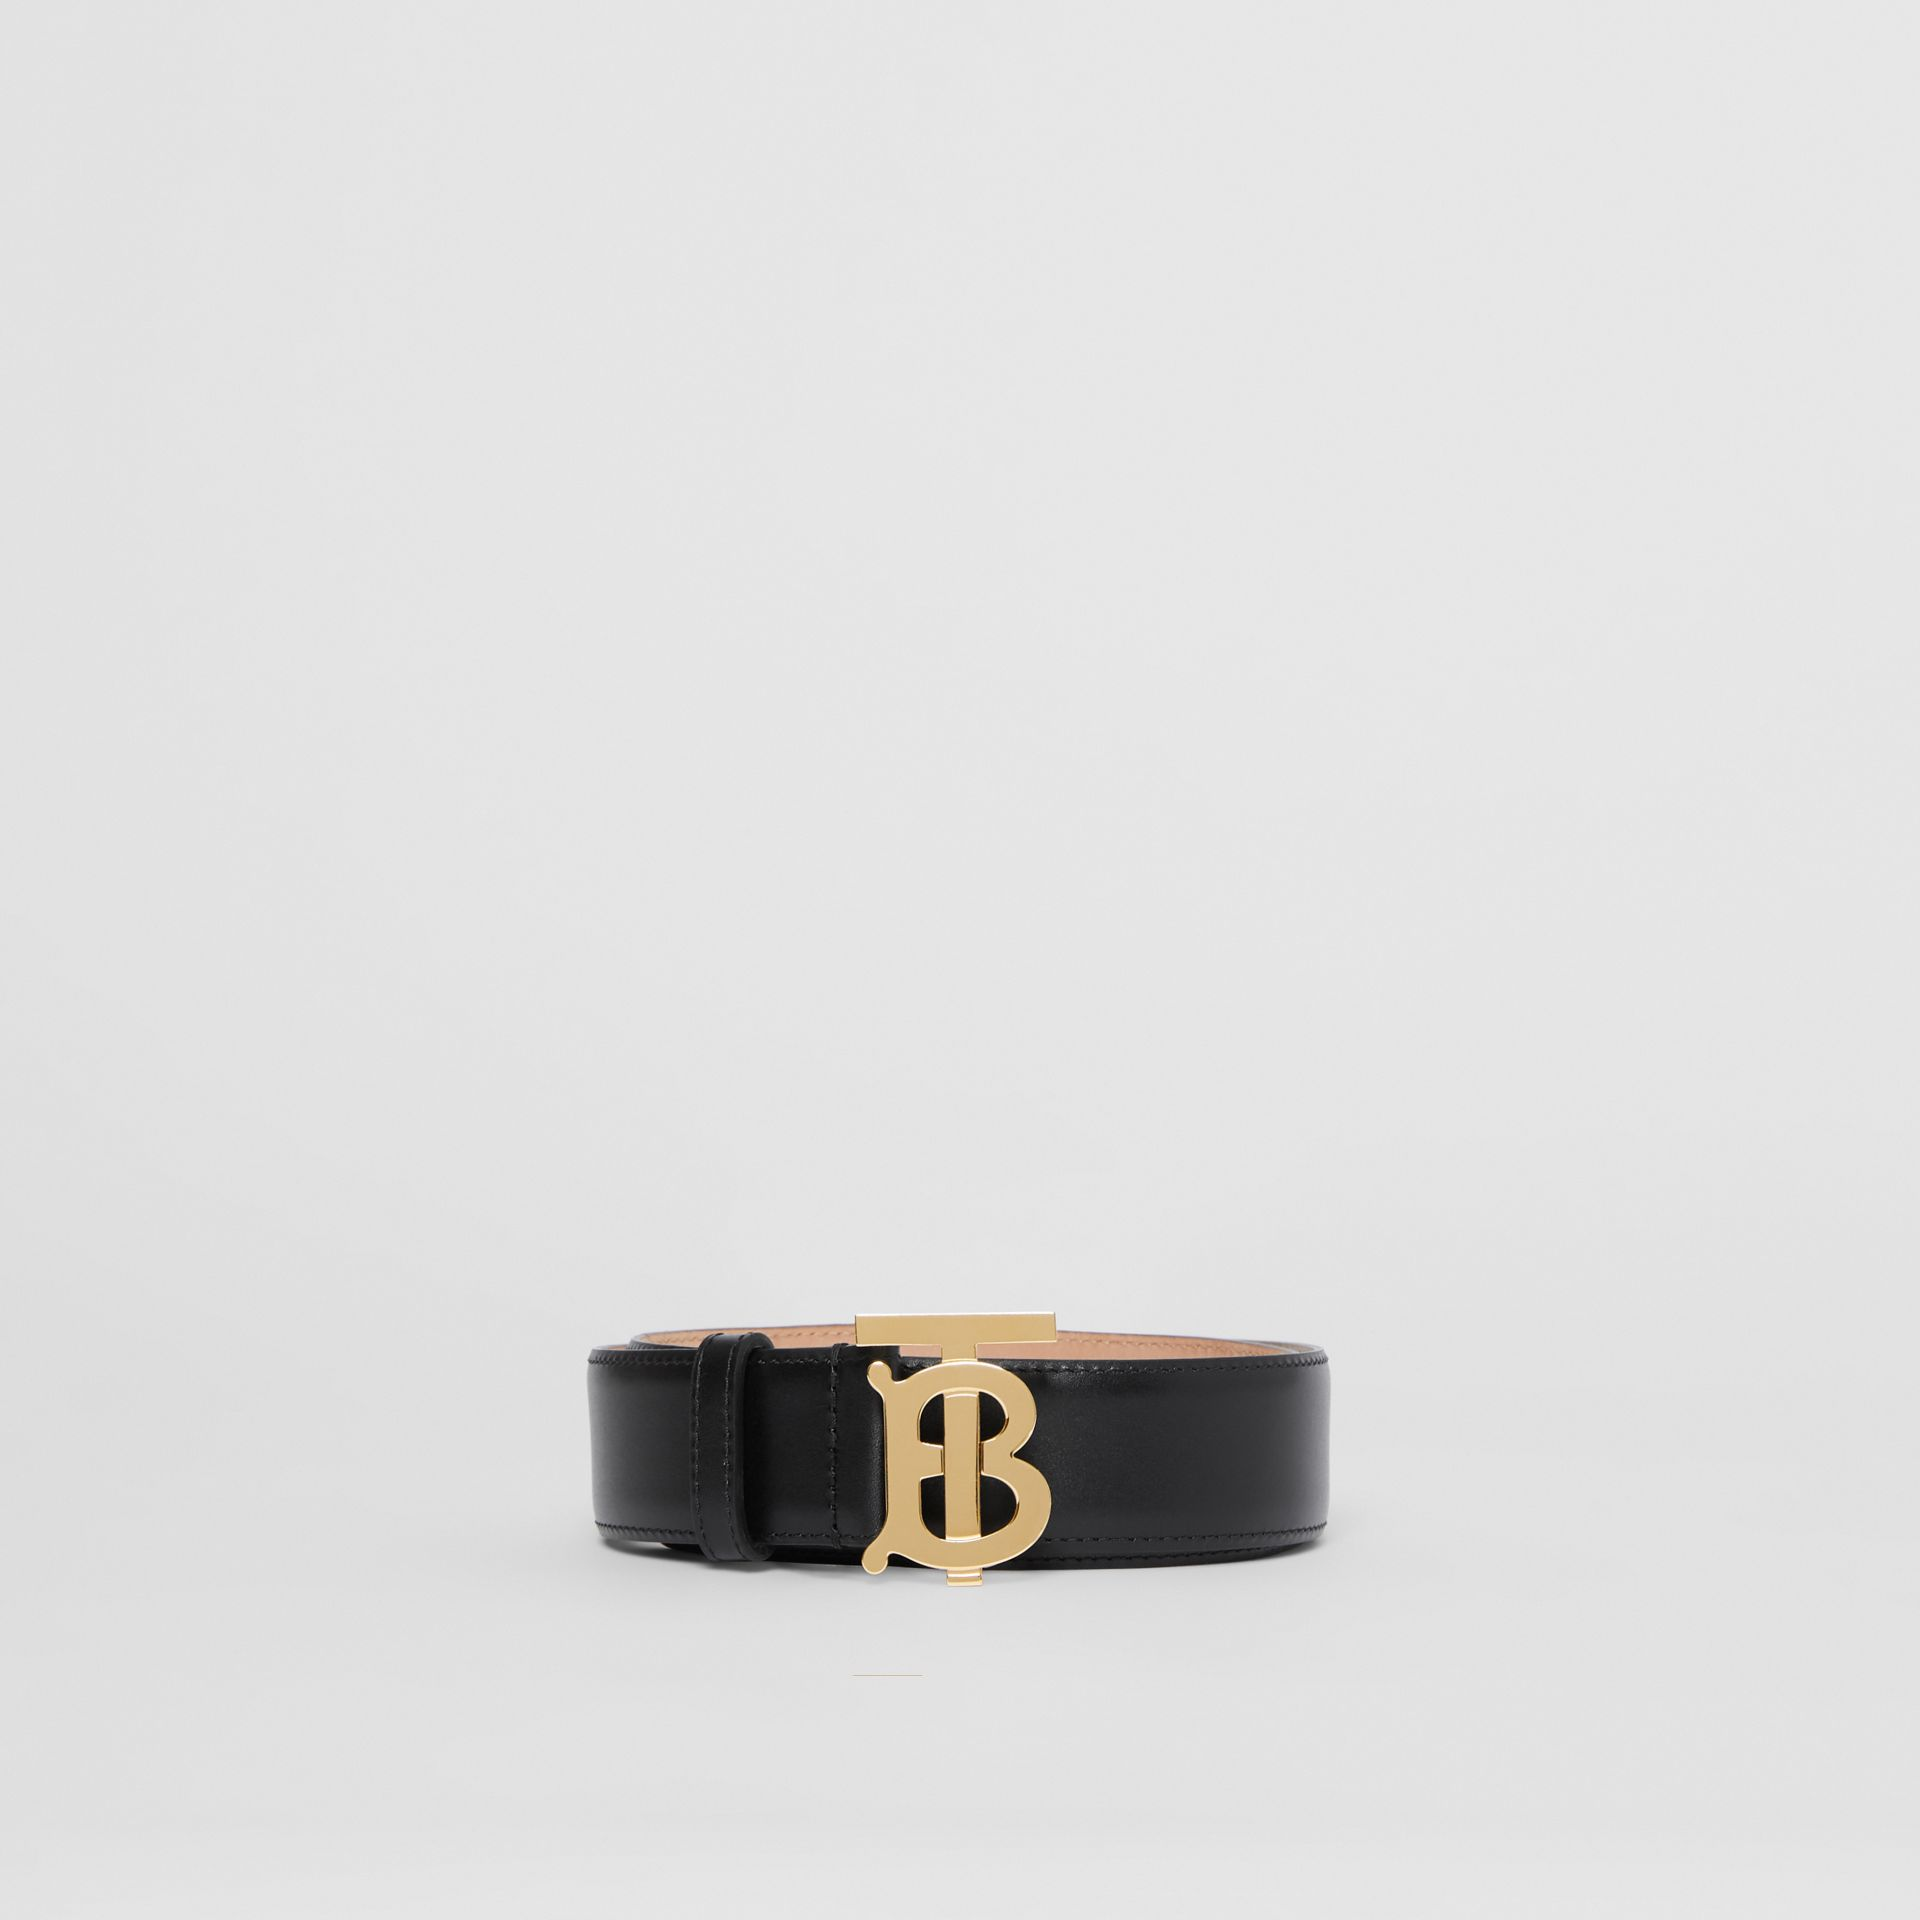 Monogram Motif Leather Belt in Black - Women | Burberry - gallery image 3